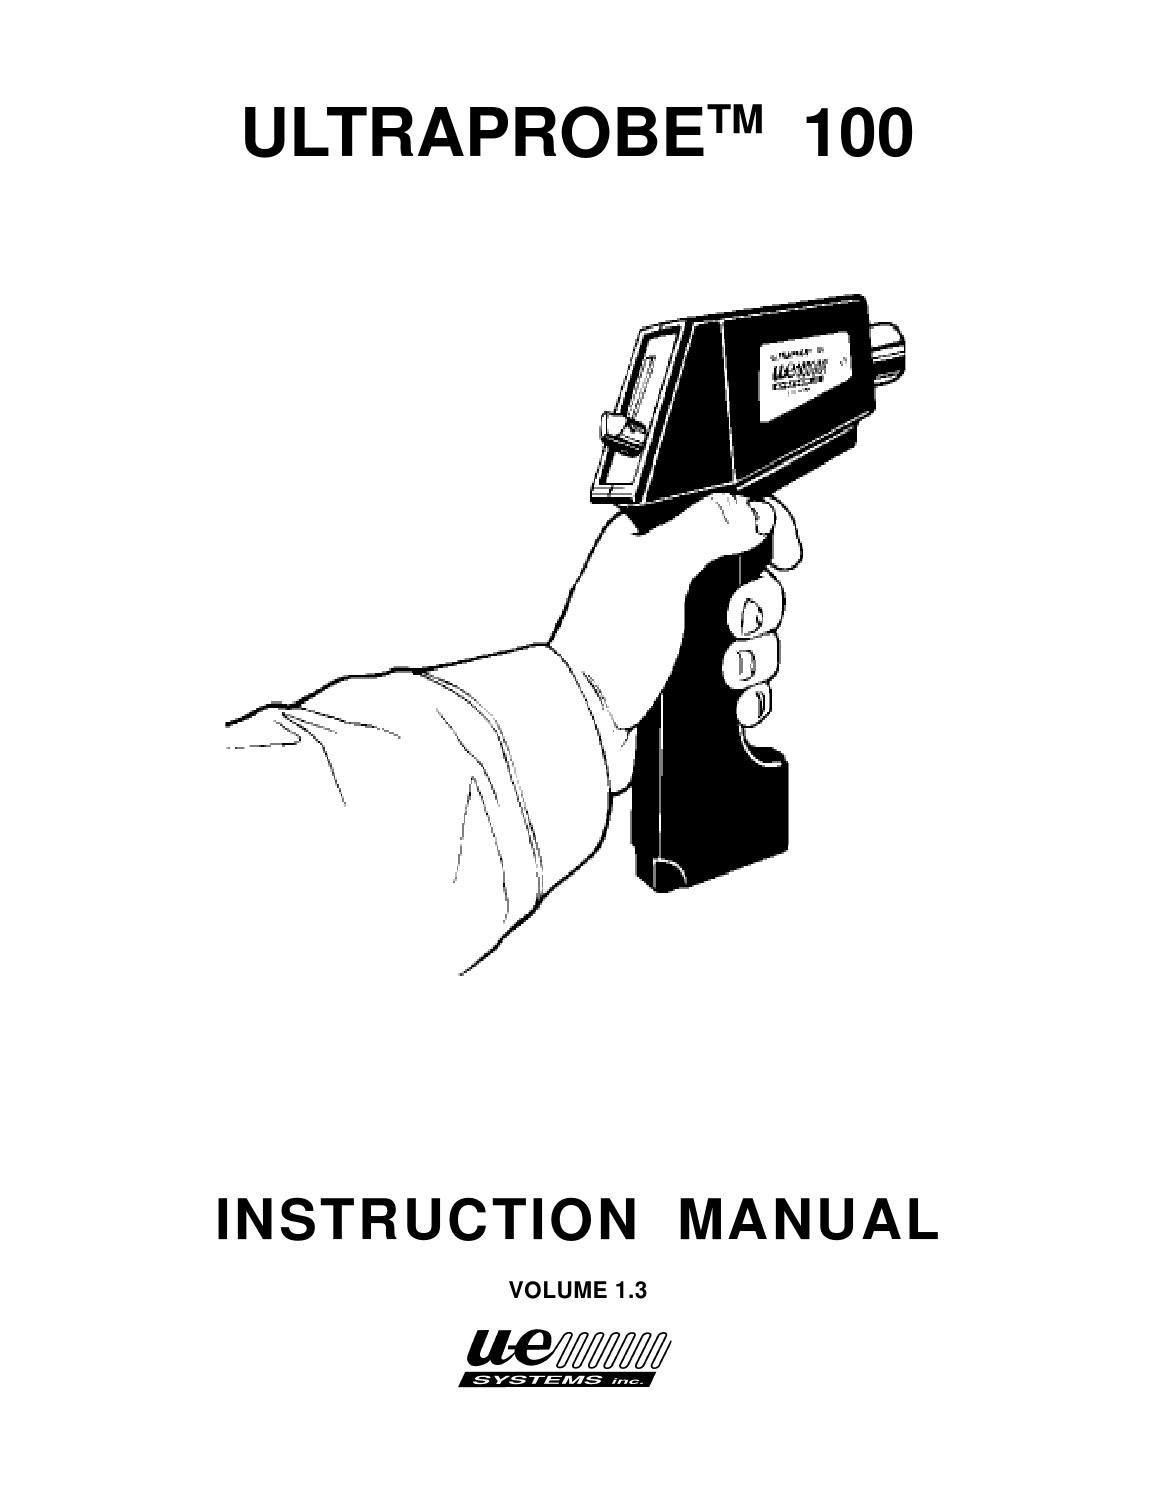 Instruction Manual Ultraprobe 100 (English) by RefriApp